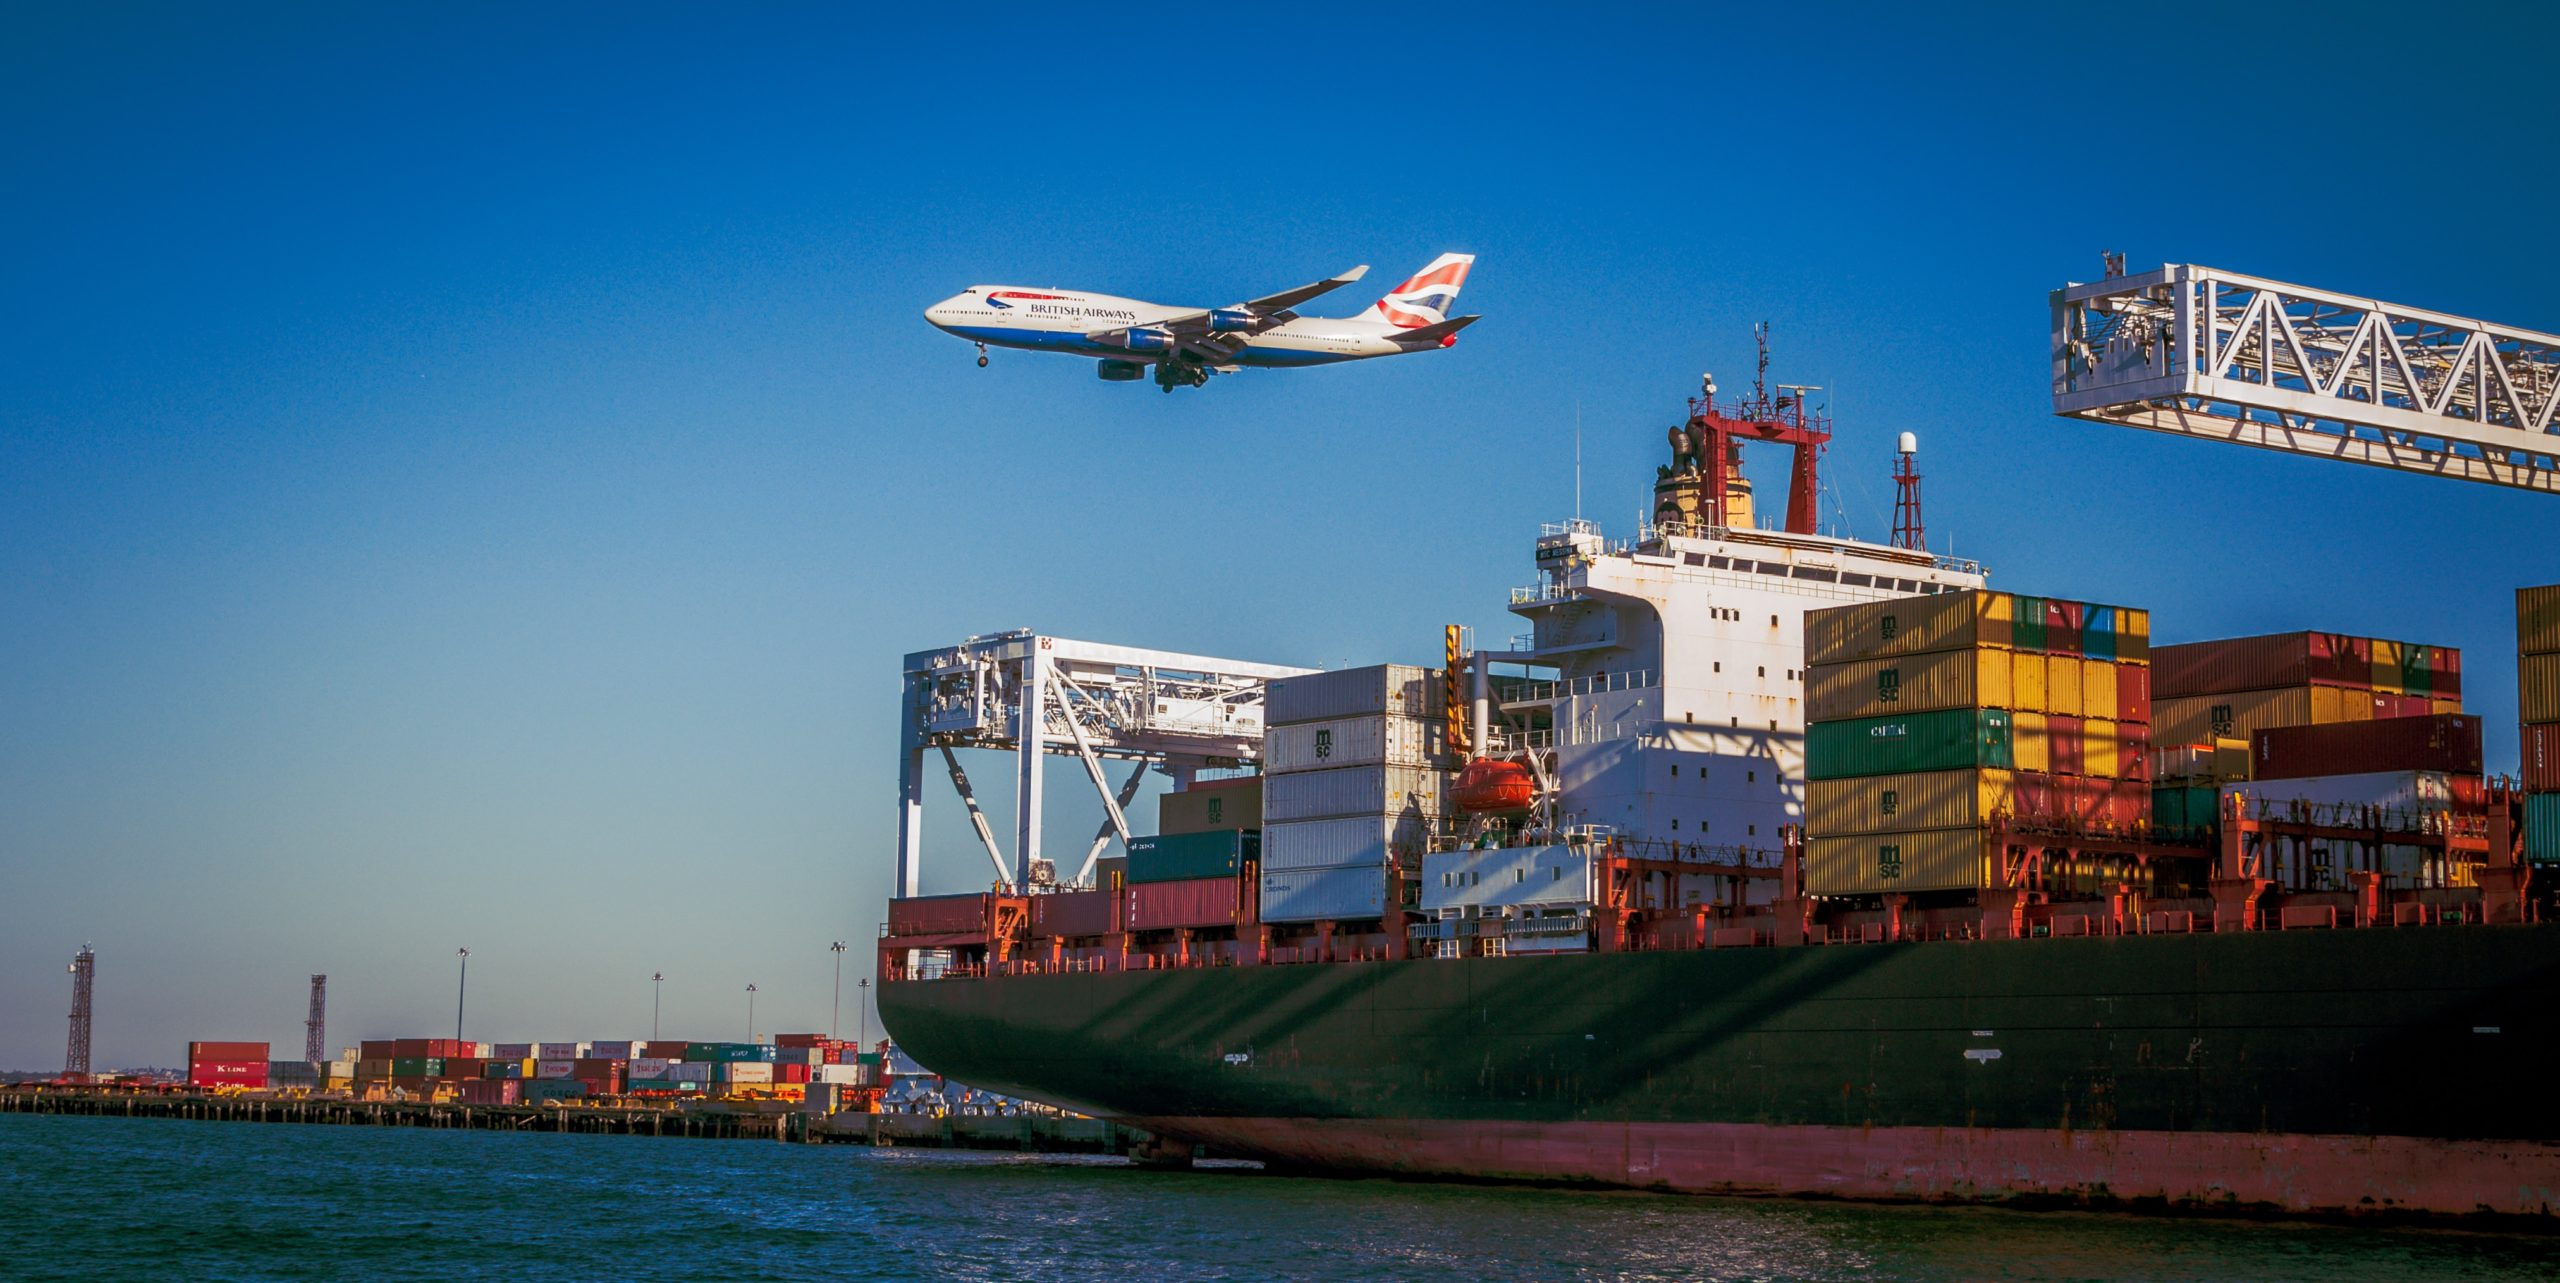 Shipping container ship with low flying aeroplane